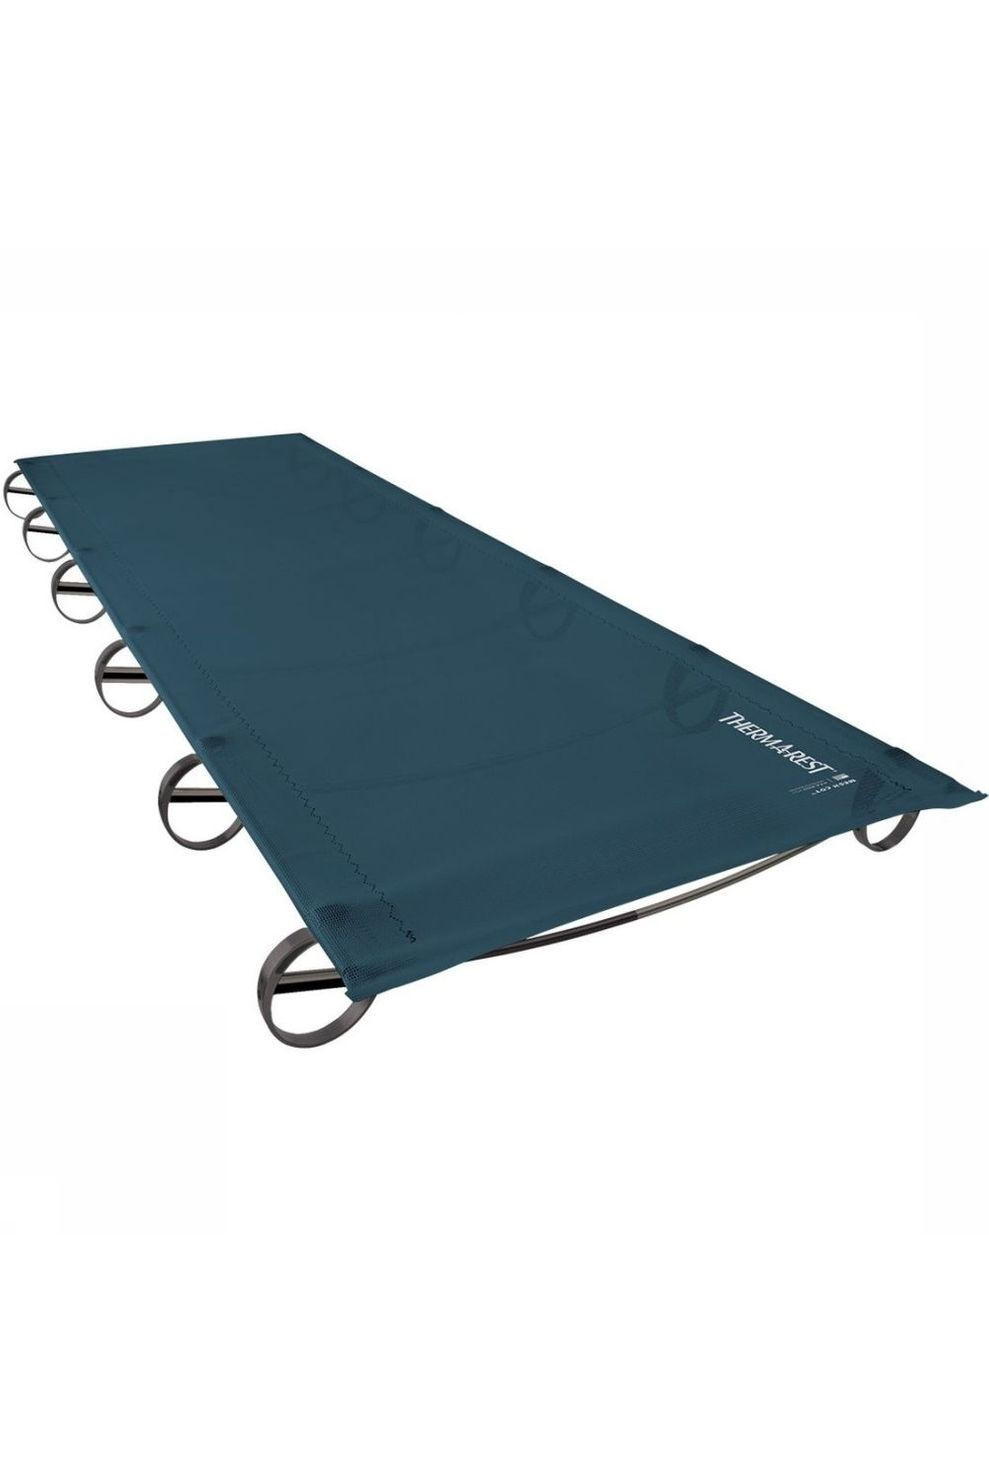 Therm-a-Rest Veldbed Luxurylite Mesh Cot Large - - Transparant